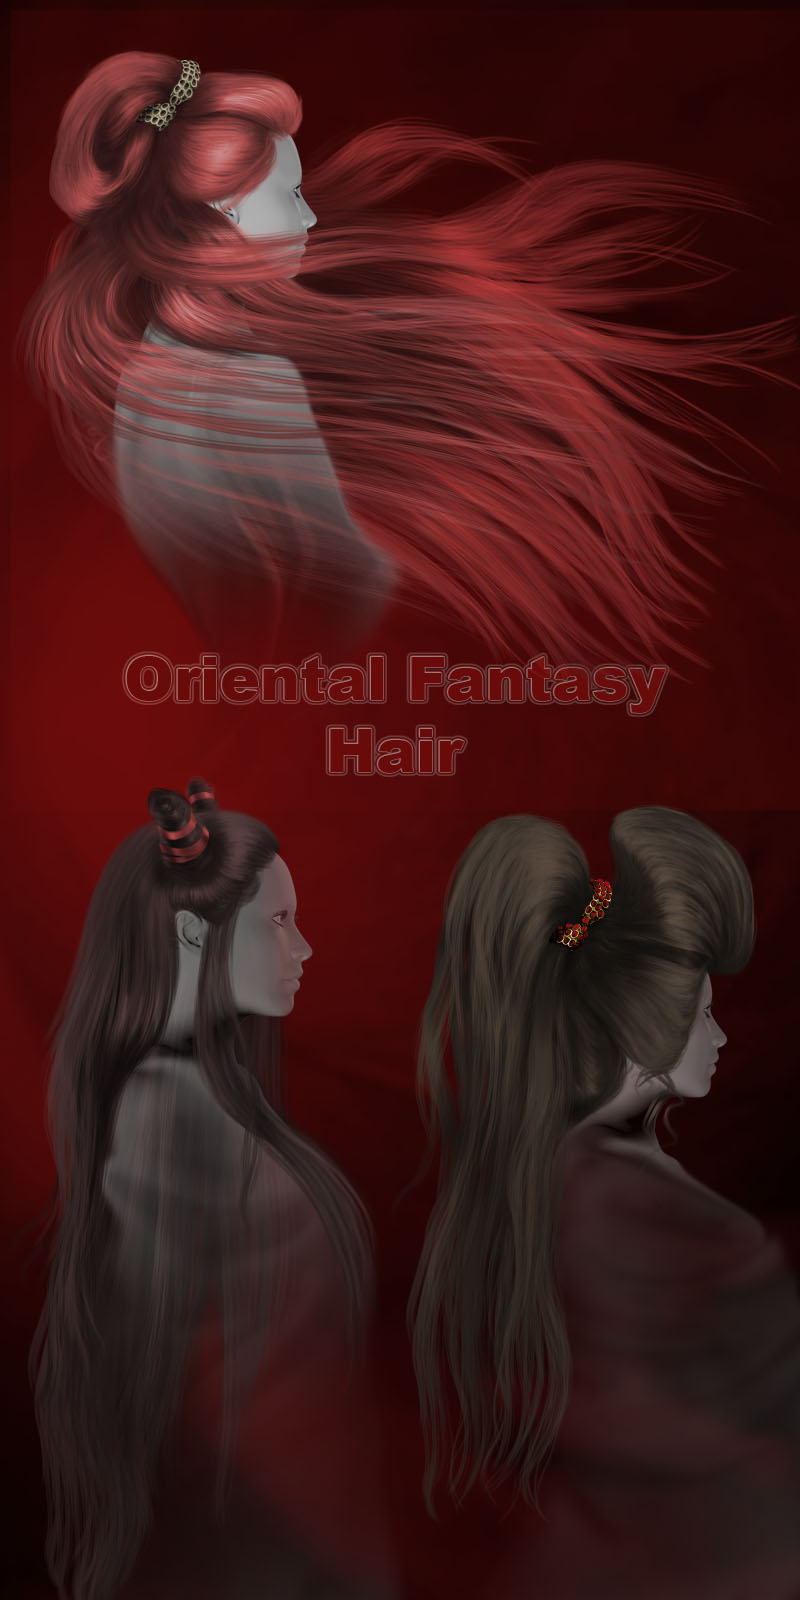 Oriental Fantasy hair by StudioArtVartanian